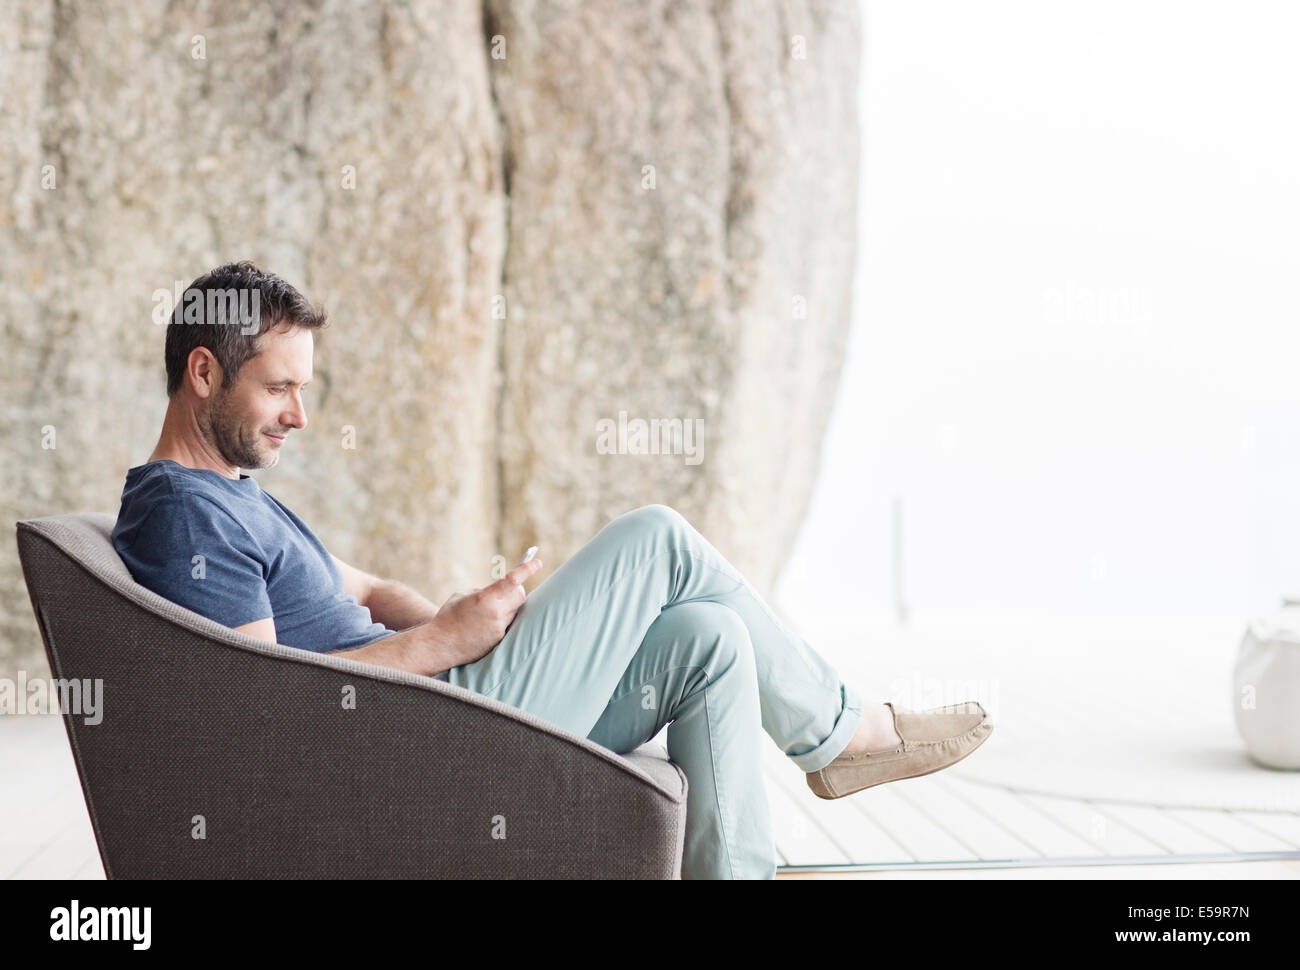 Man sitting in modern armchair - Stock Image